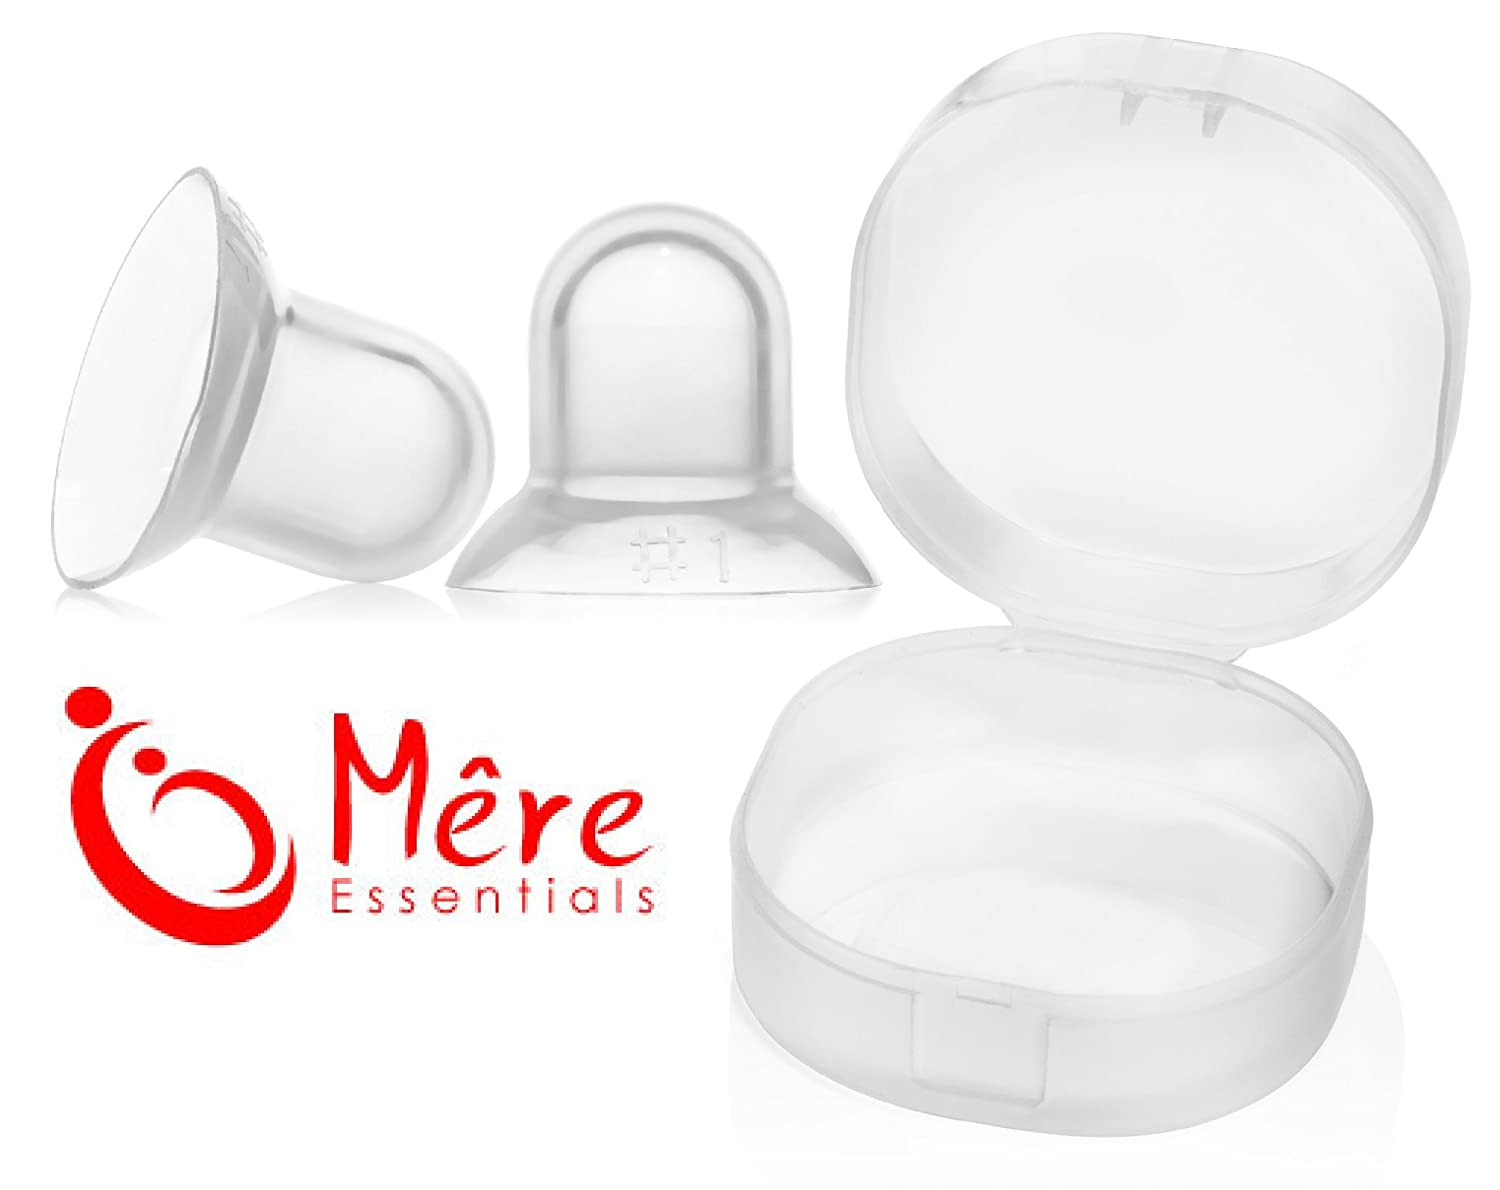 Mere Essentials Nipple Supplets Breast Feeding Aid for Flat, Inverted Nipples with Storage Case (Pair) (Large) Mêre Essentials